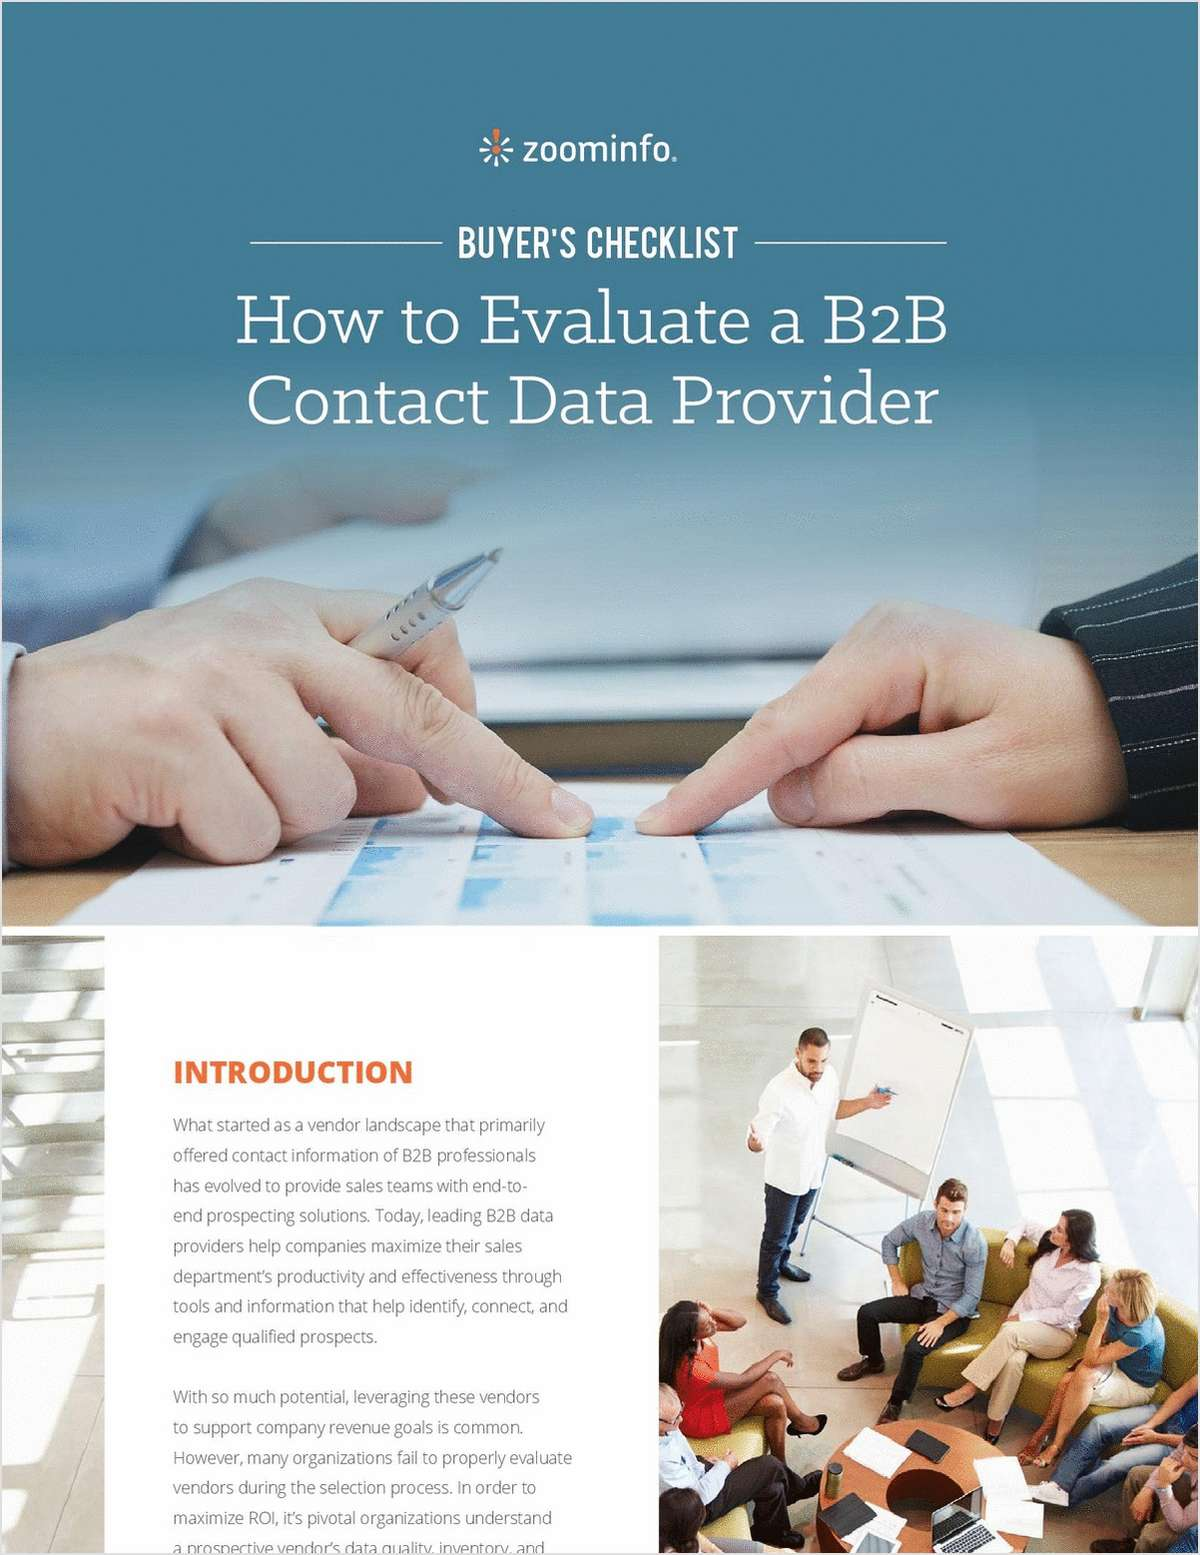 How to Evaluate a B2B Contact Data Provider